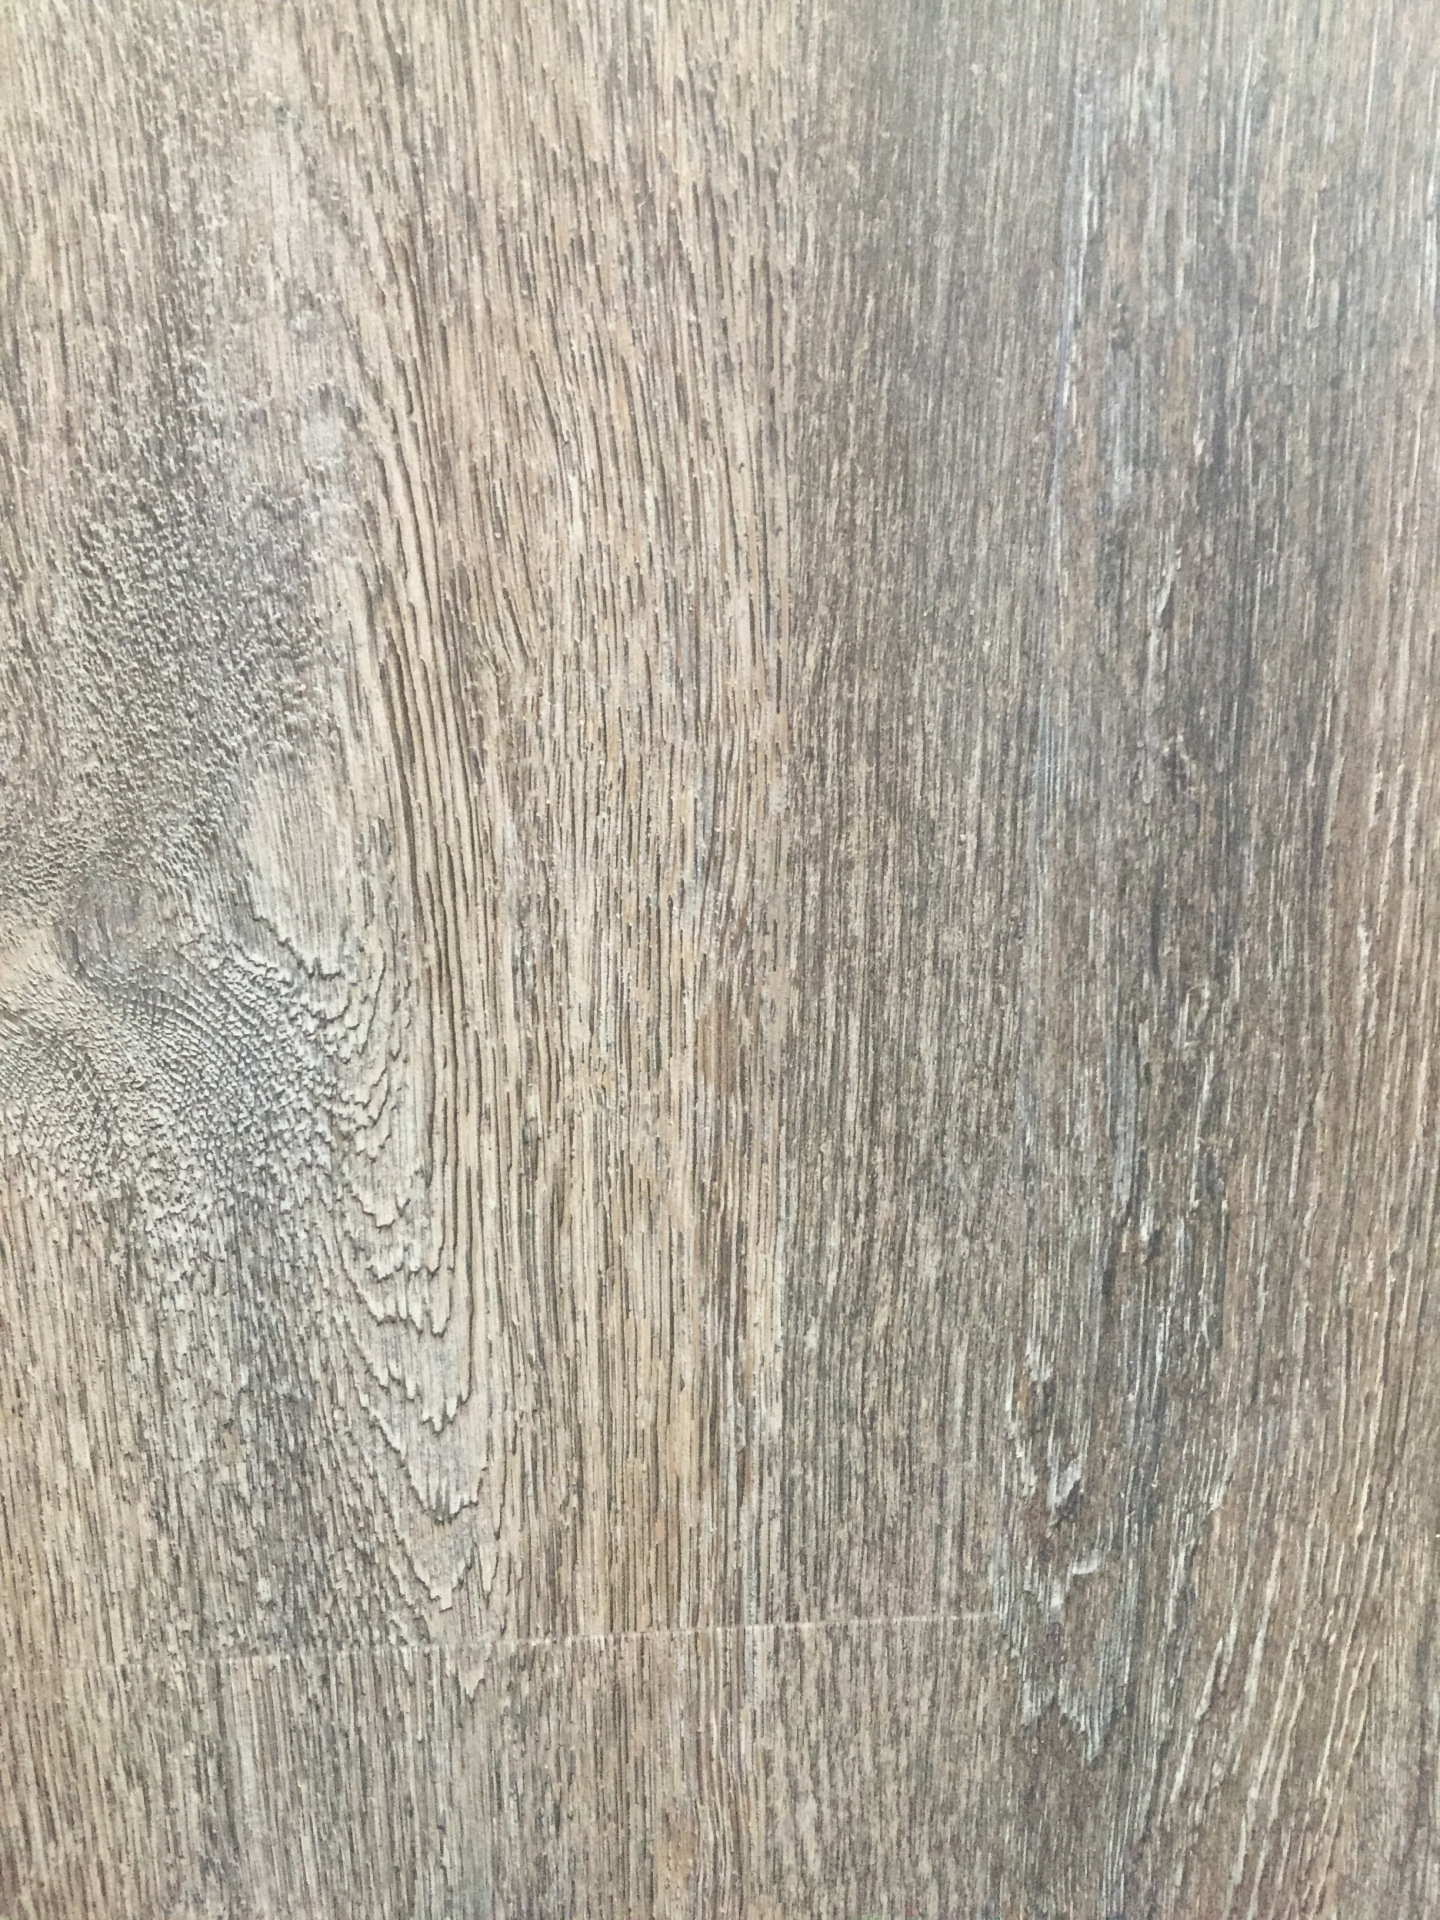 Triversa Luxury Vinyl Wood Plank- $3.99 sq. ft.